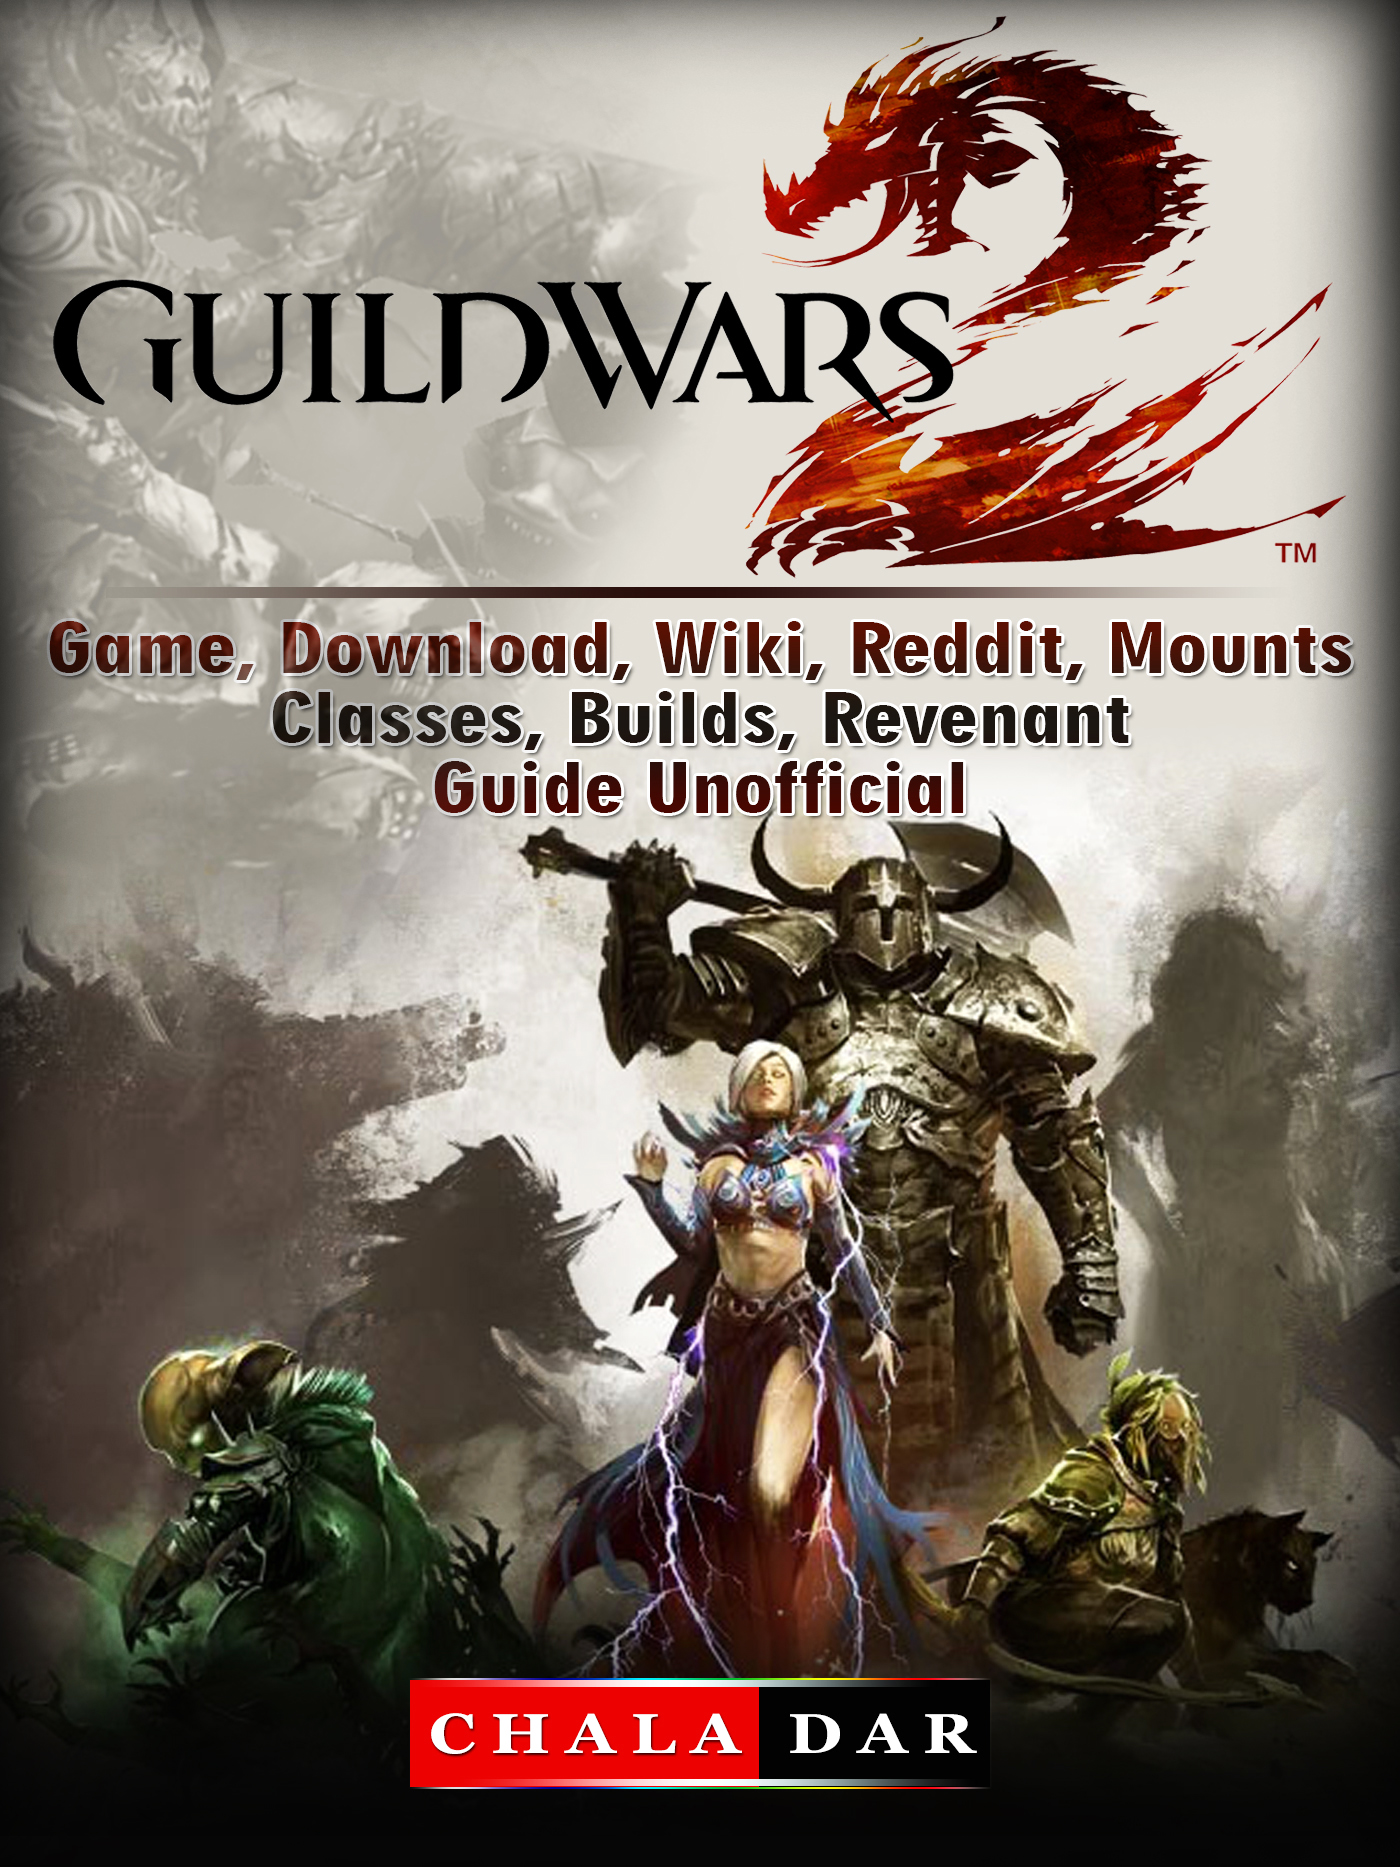 Guild Wars 2 Game, Download, Wiki, Reddit, Mounts, Classes, Builds, Revenant, Guide Unofficial By Chala Dar